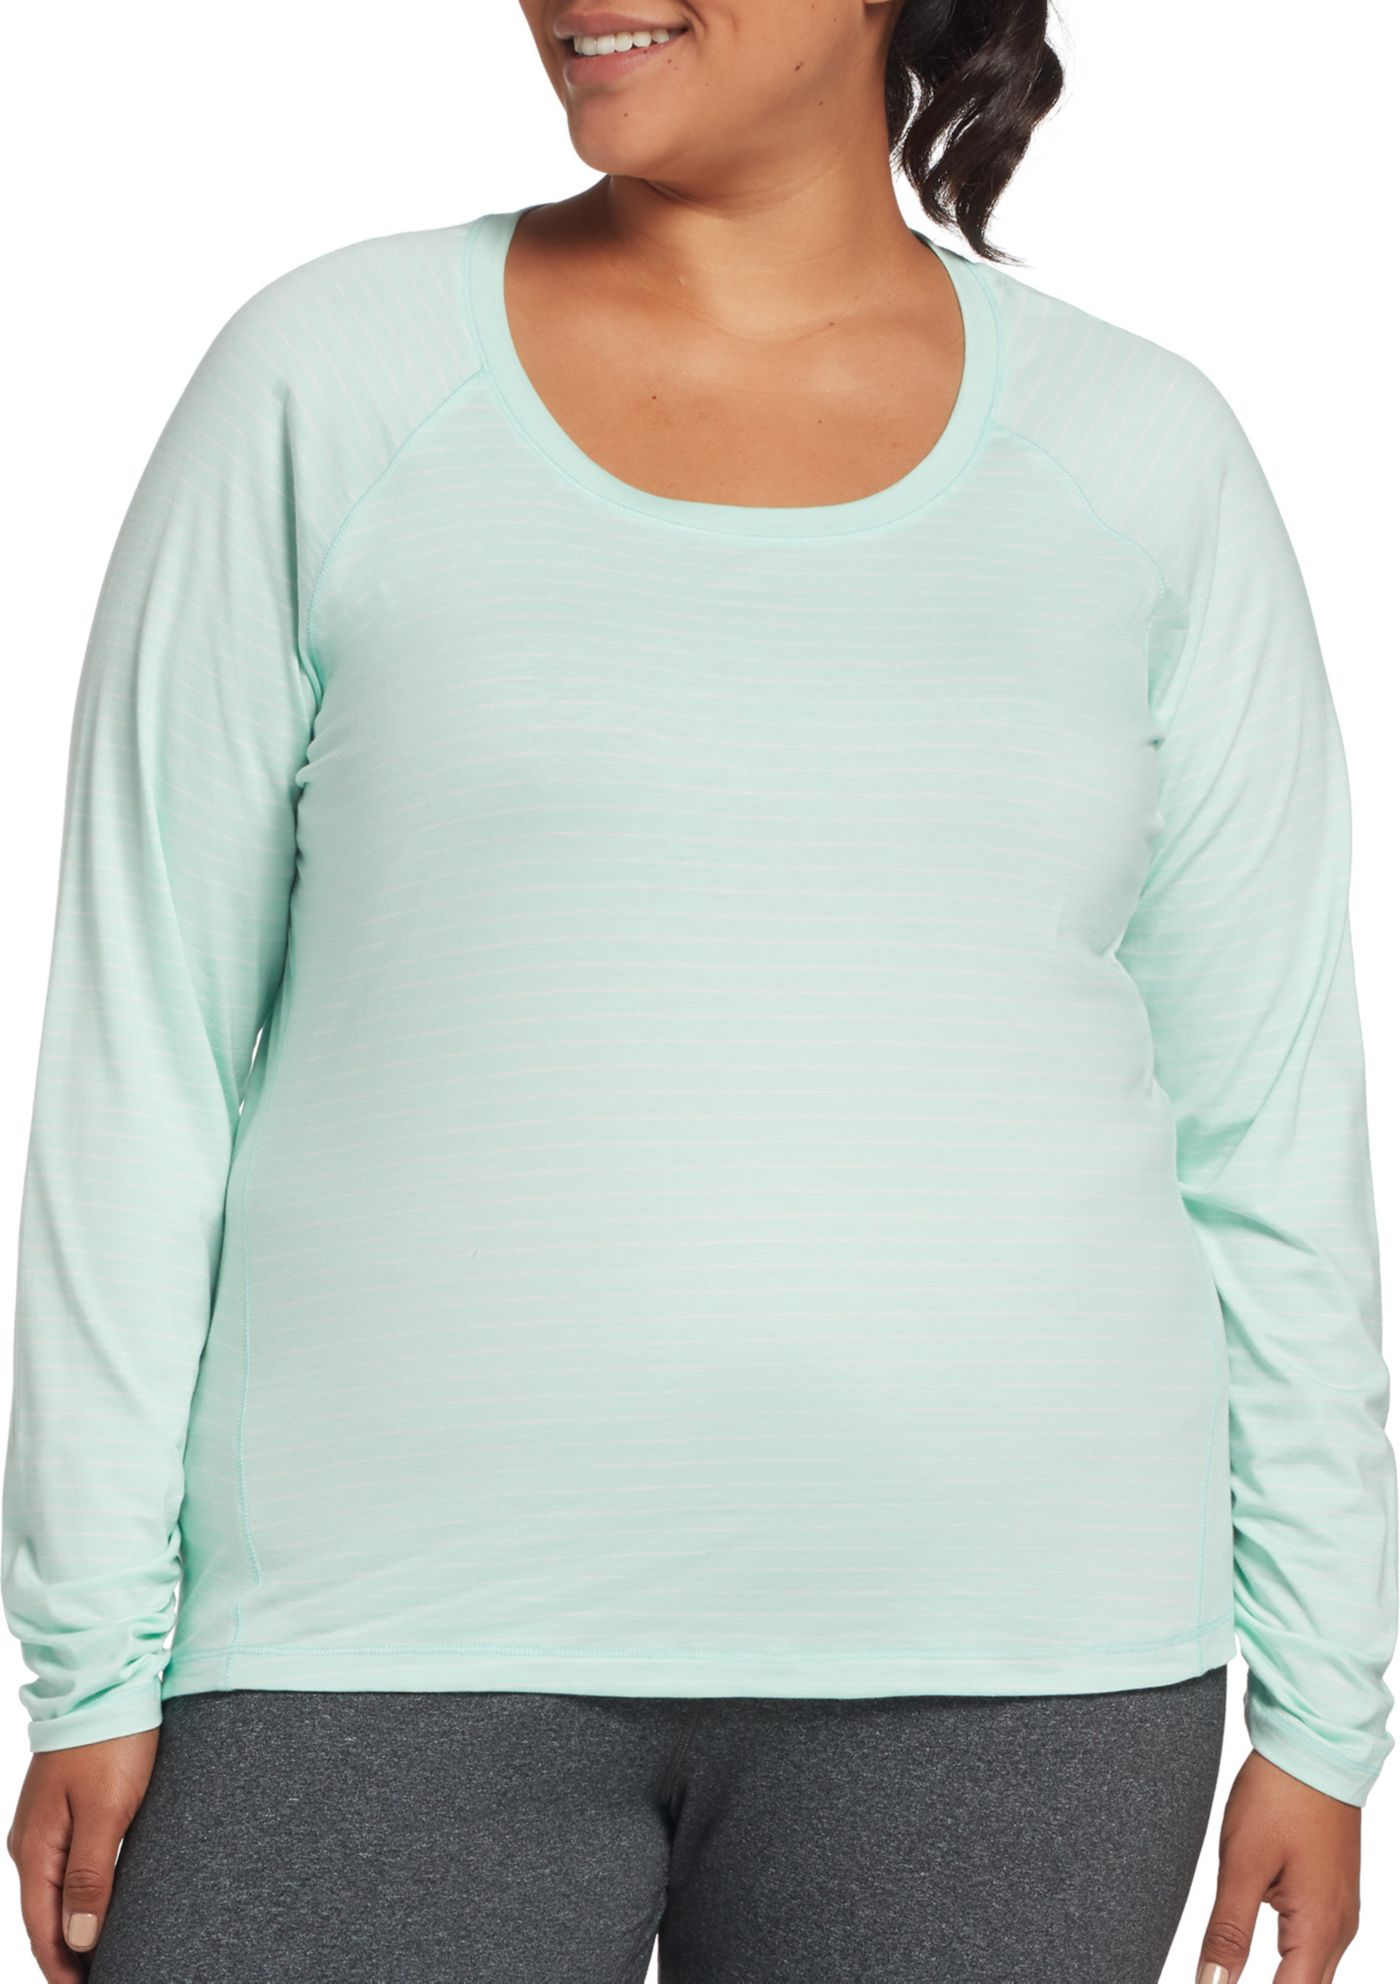 CALIA by Carrie Underwood Women's Plus Size Everyday Long Sleeve Shirt